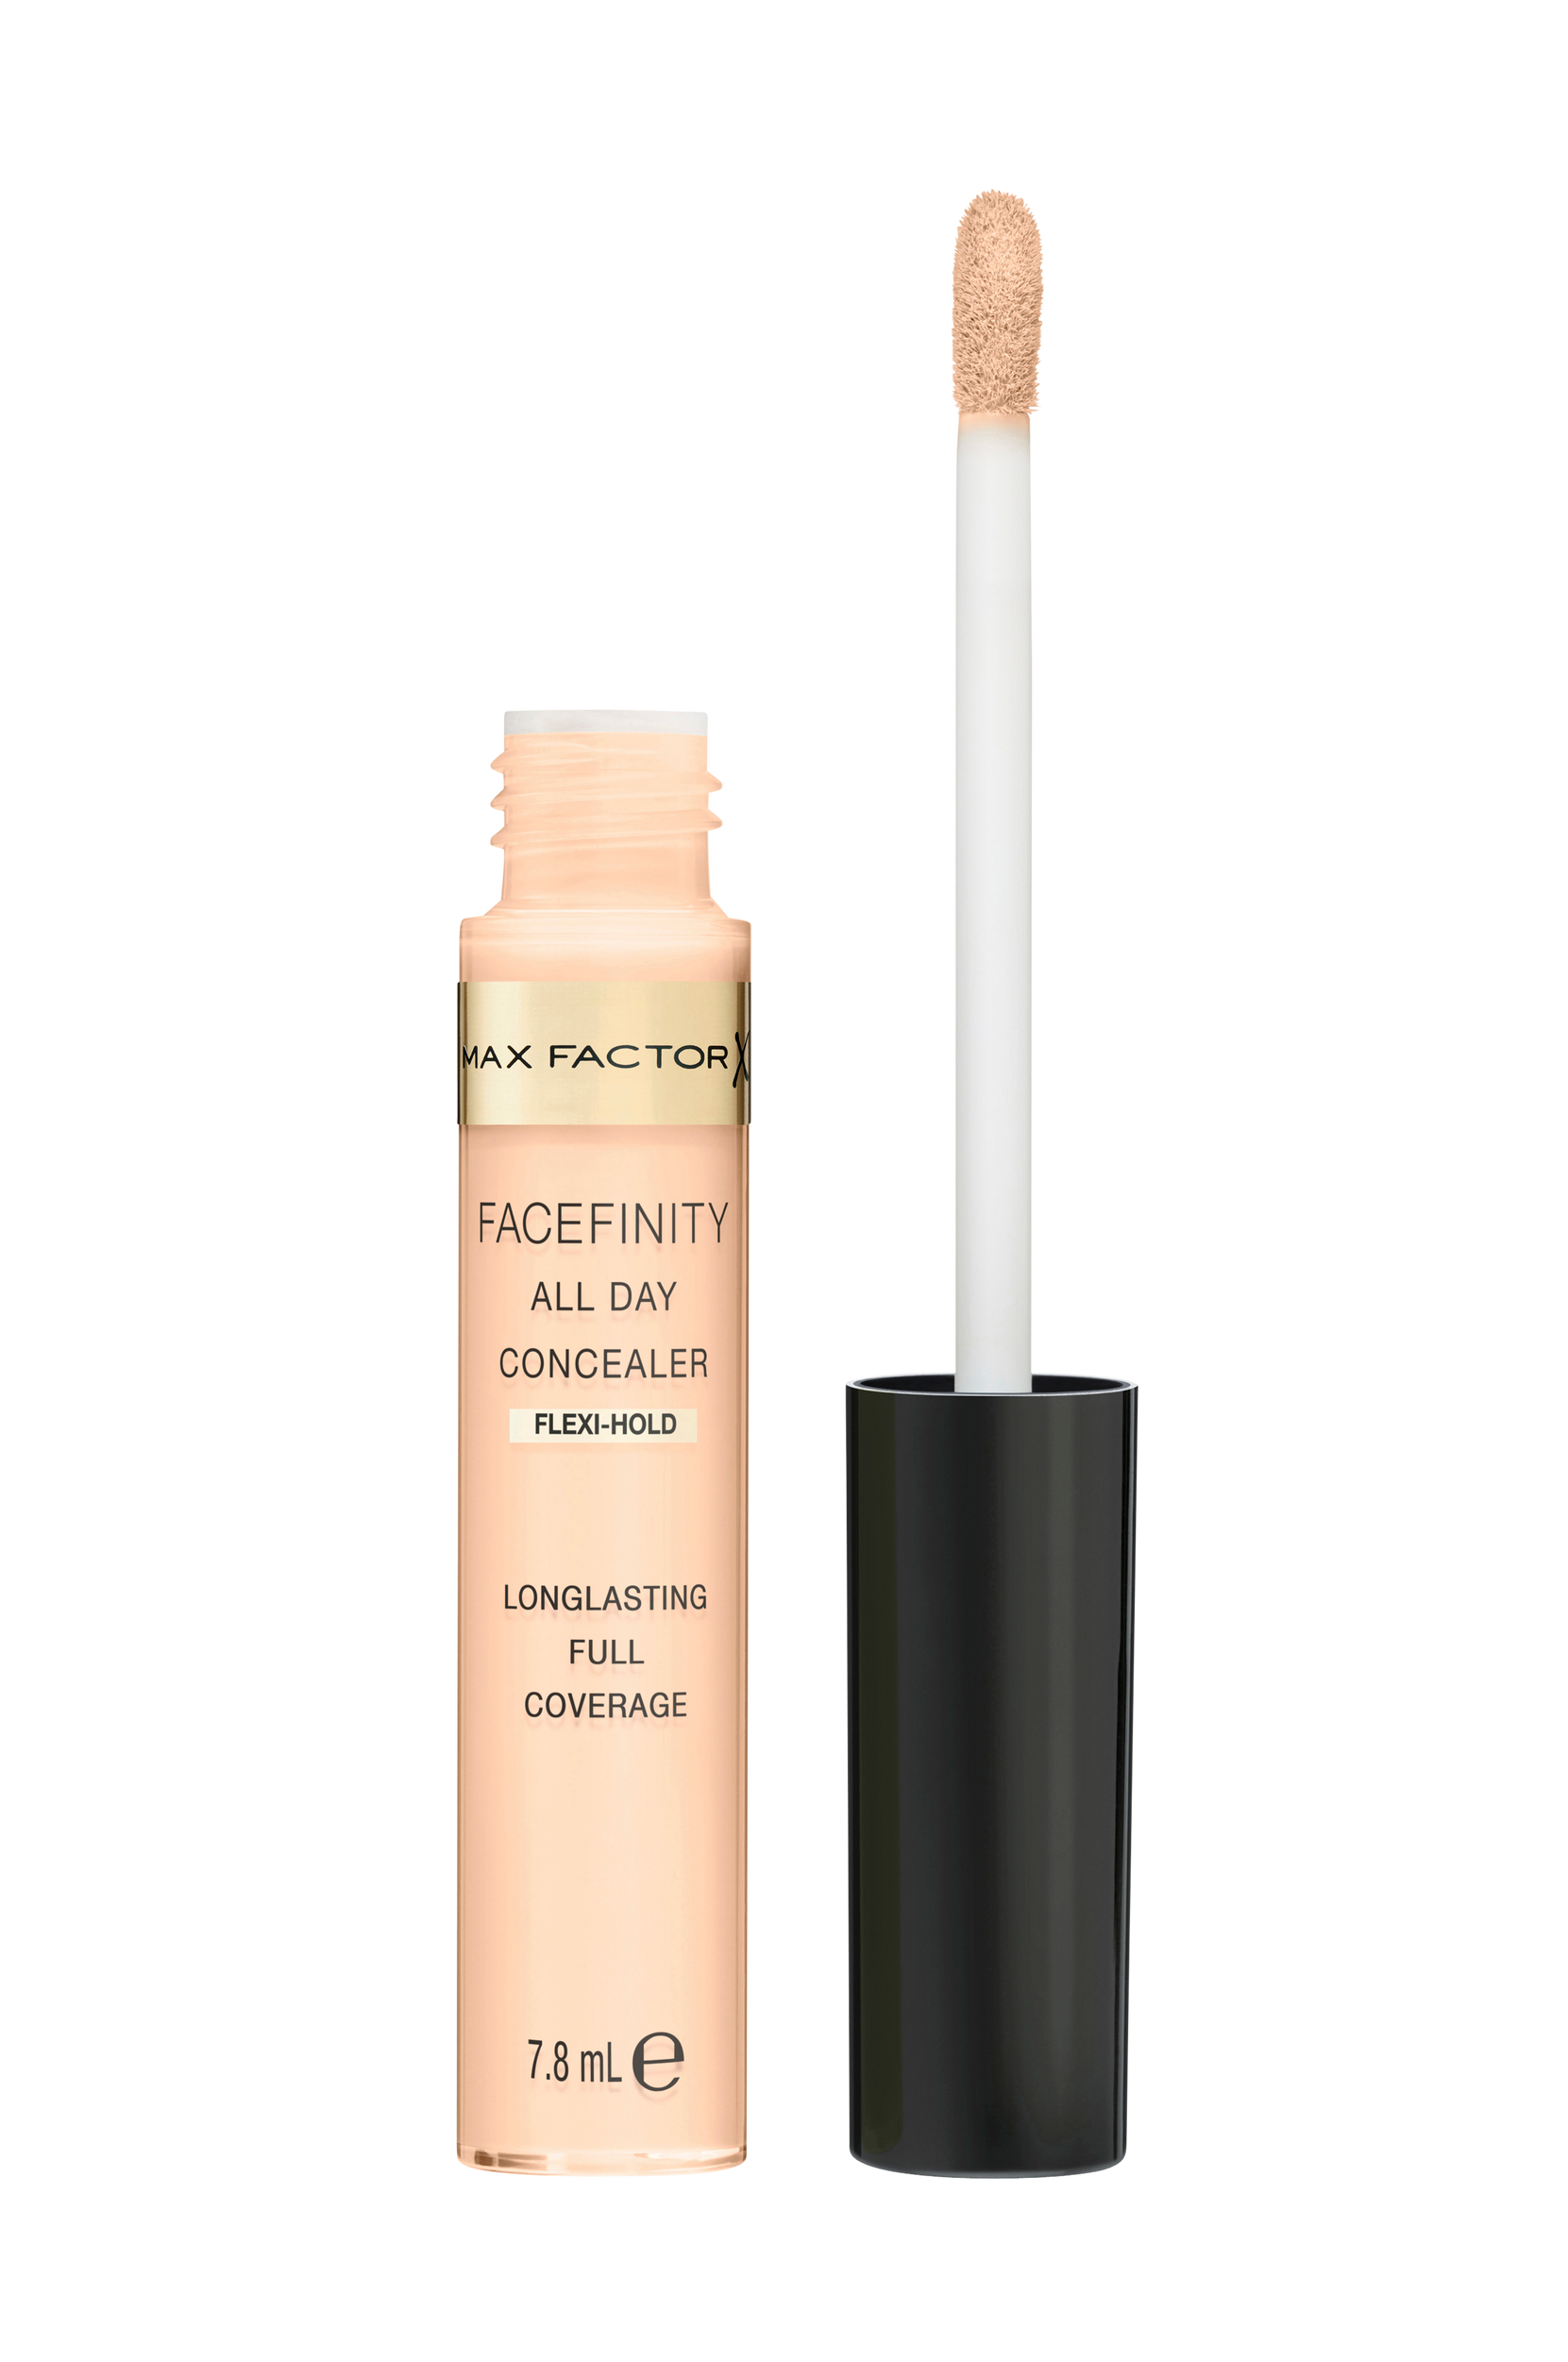 Max Factor - Facefinity All Day Concealer - Natur